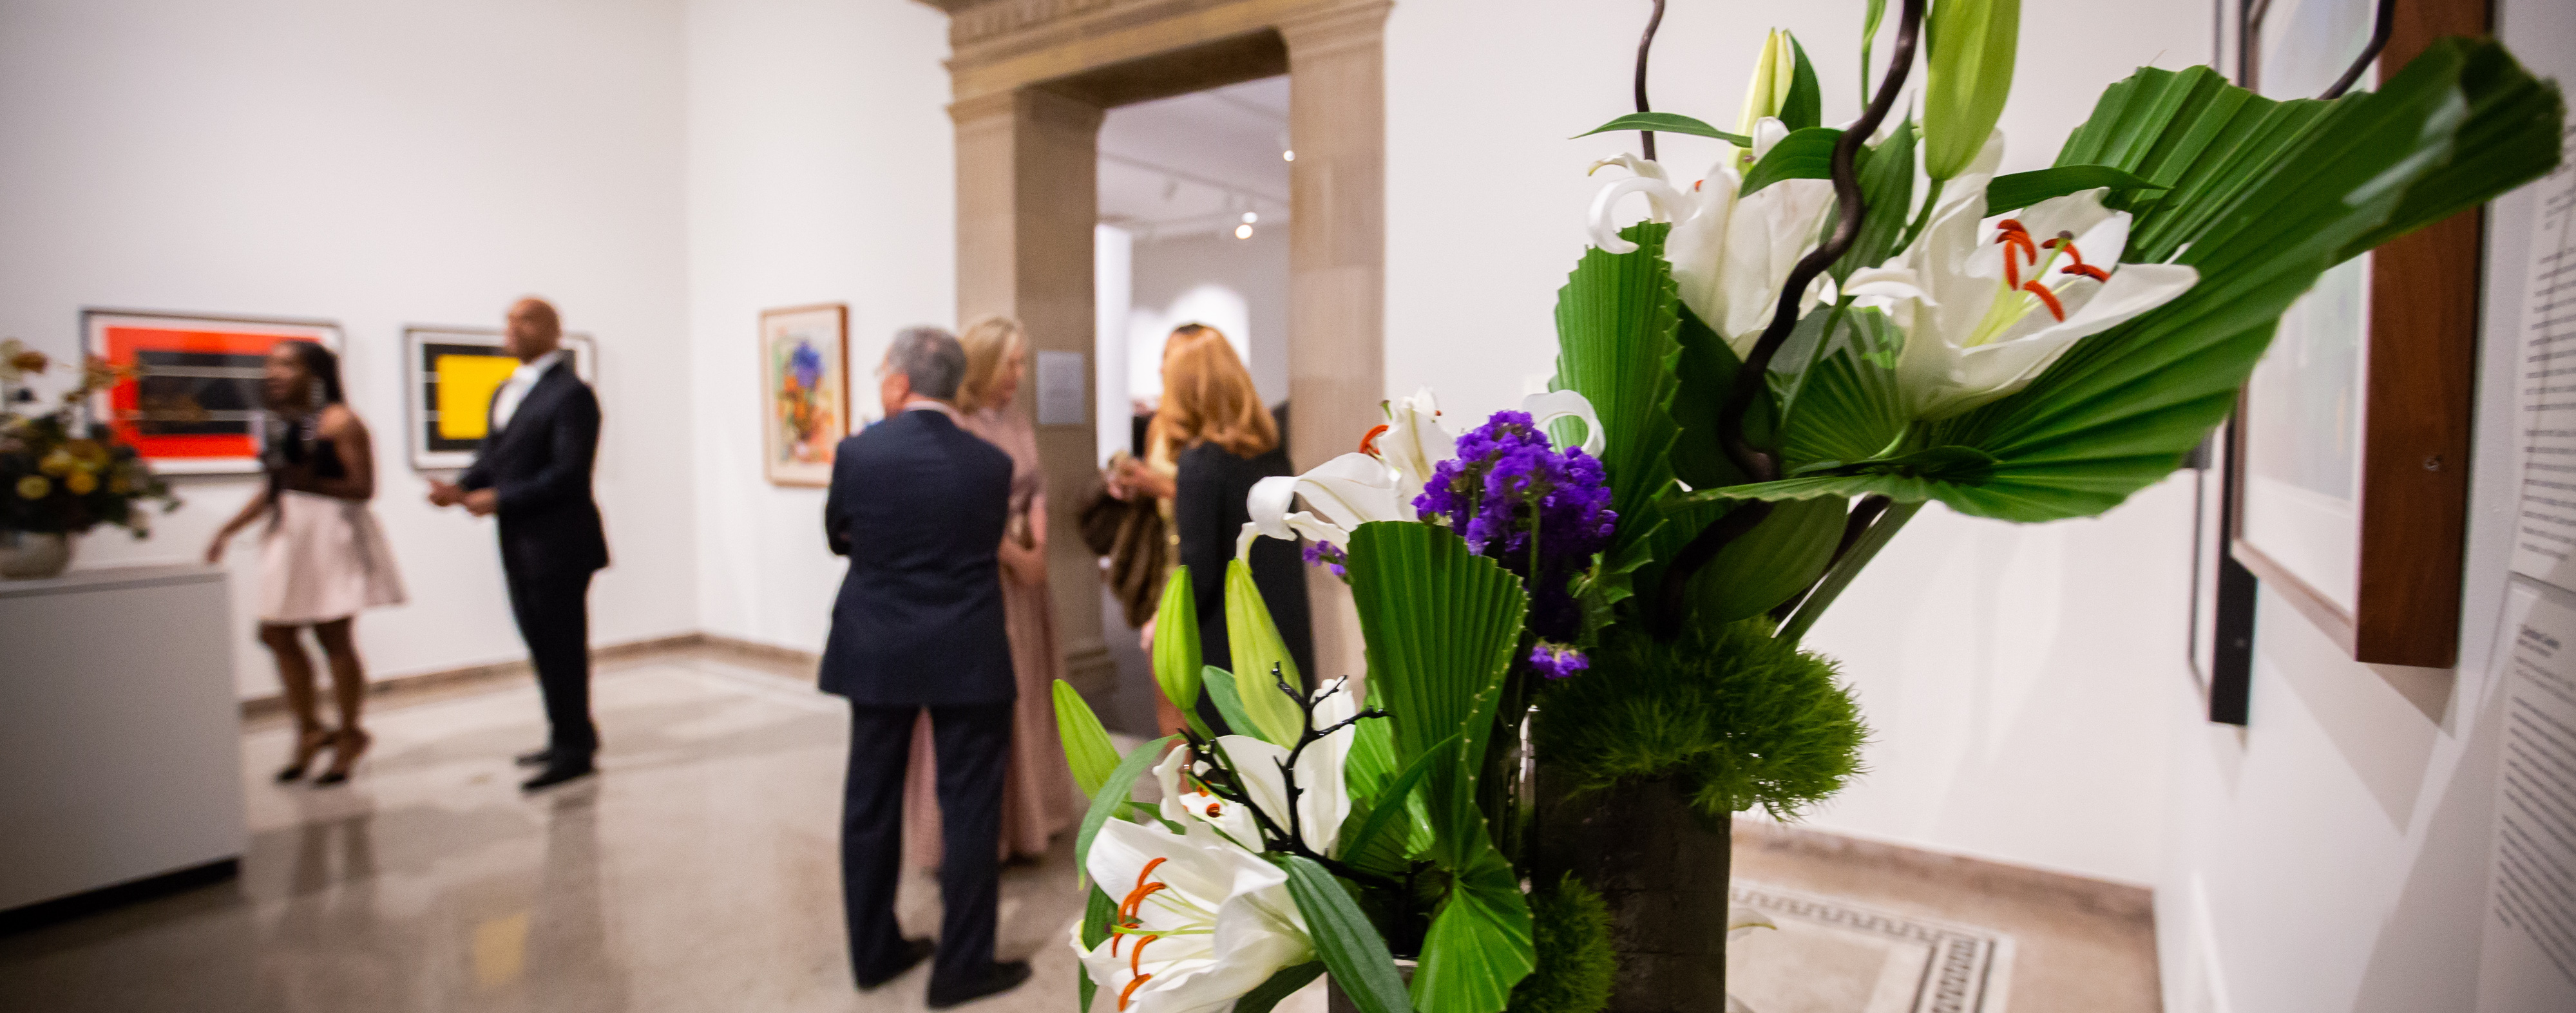 Visitors in the galleries during art in bloom exhibition 2018